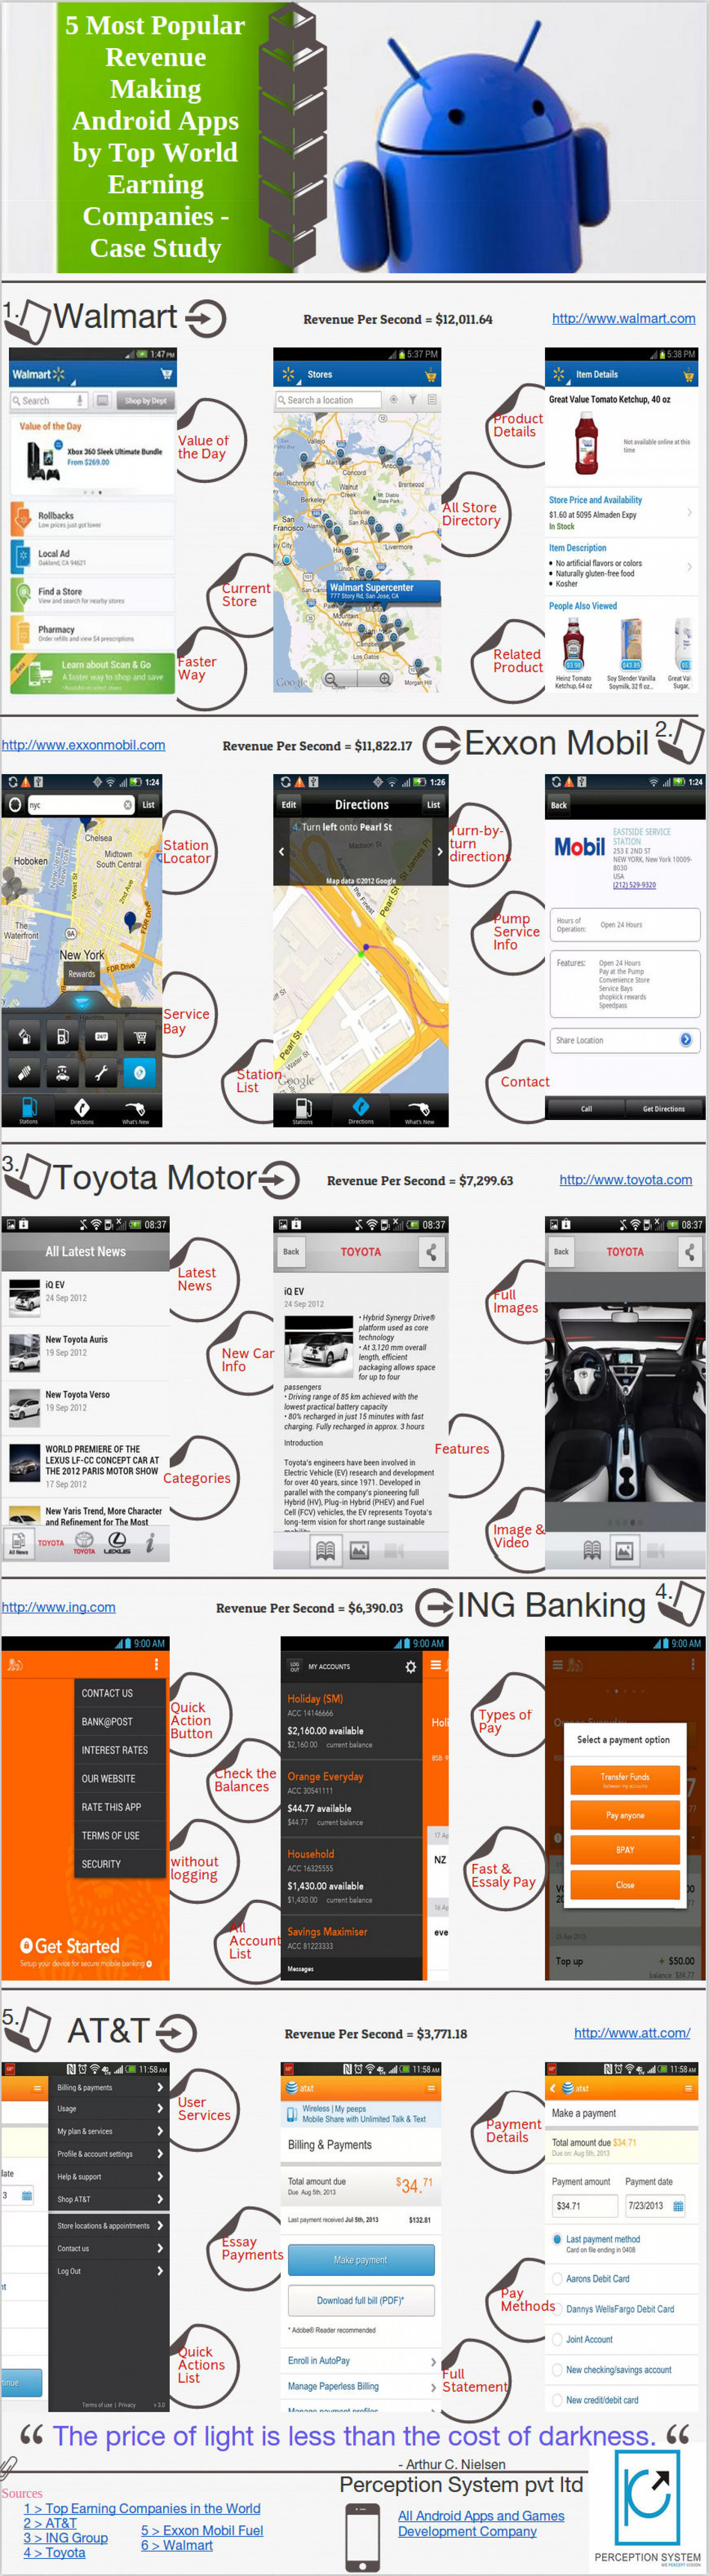 5 Most Popular Revenue Making Android Apps by Top World Earning Companies  - Case Study Infographic